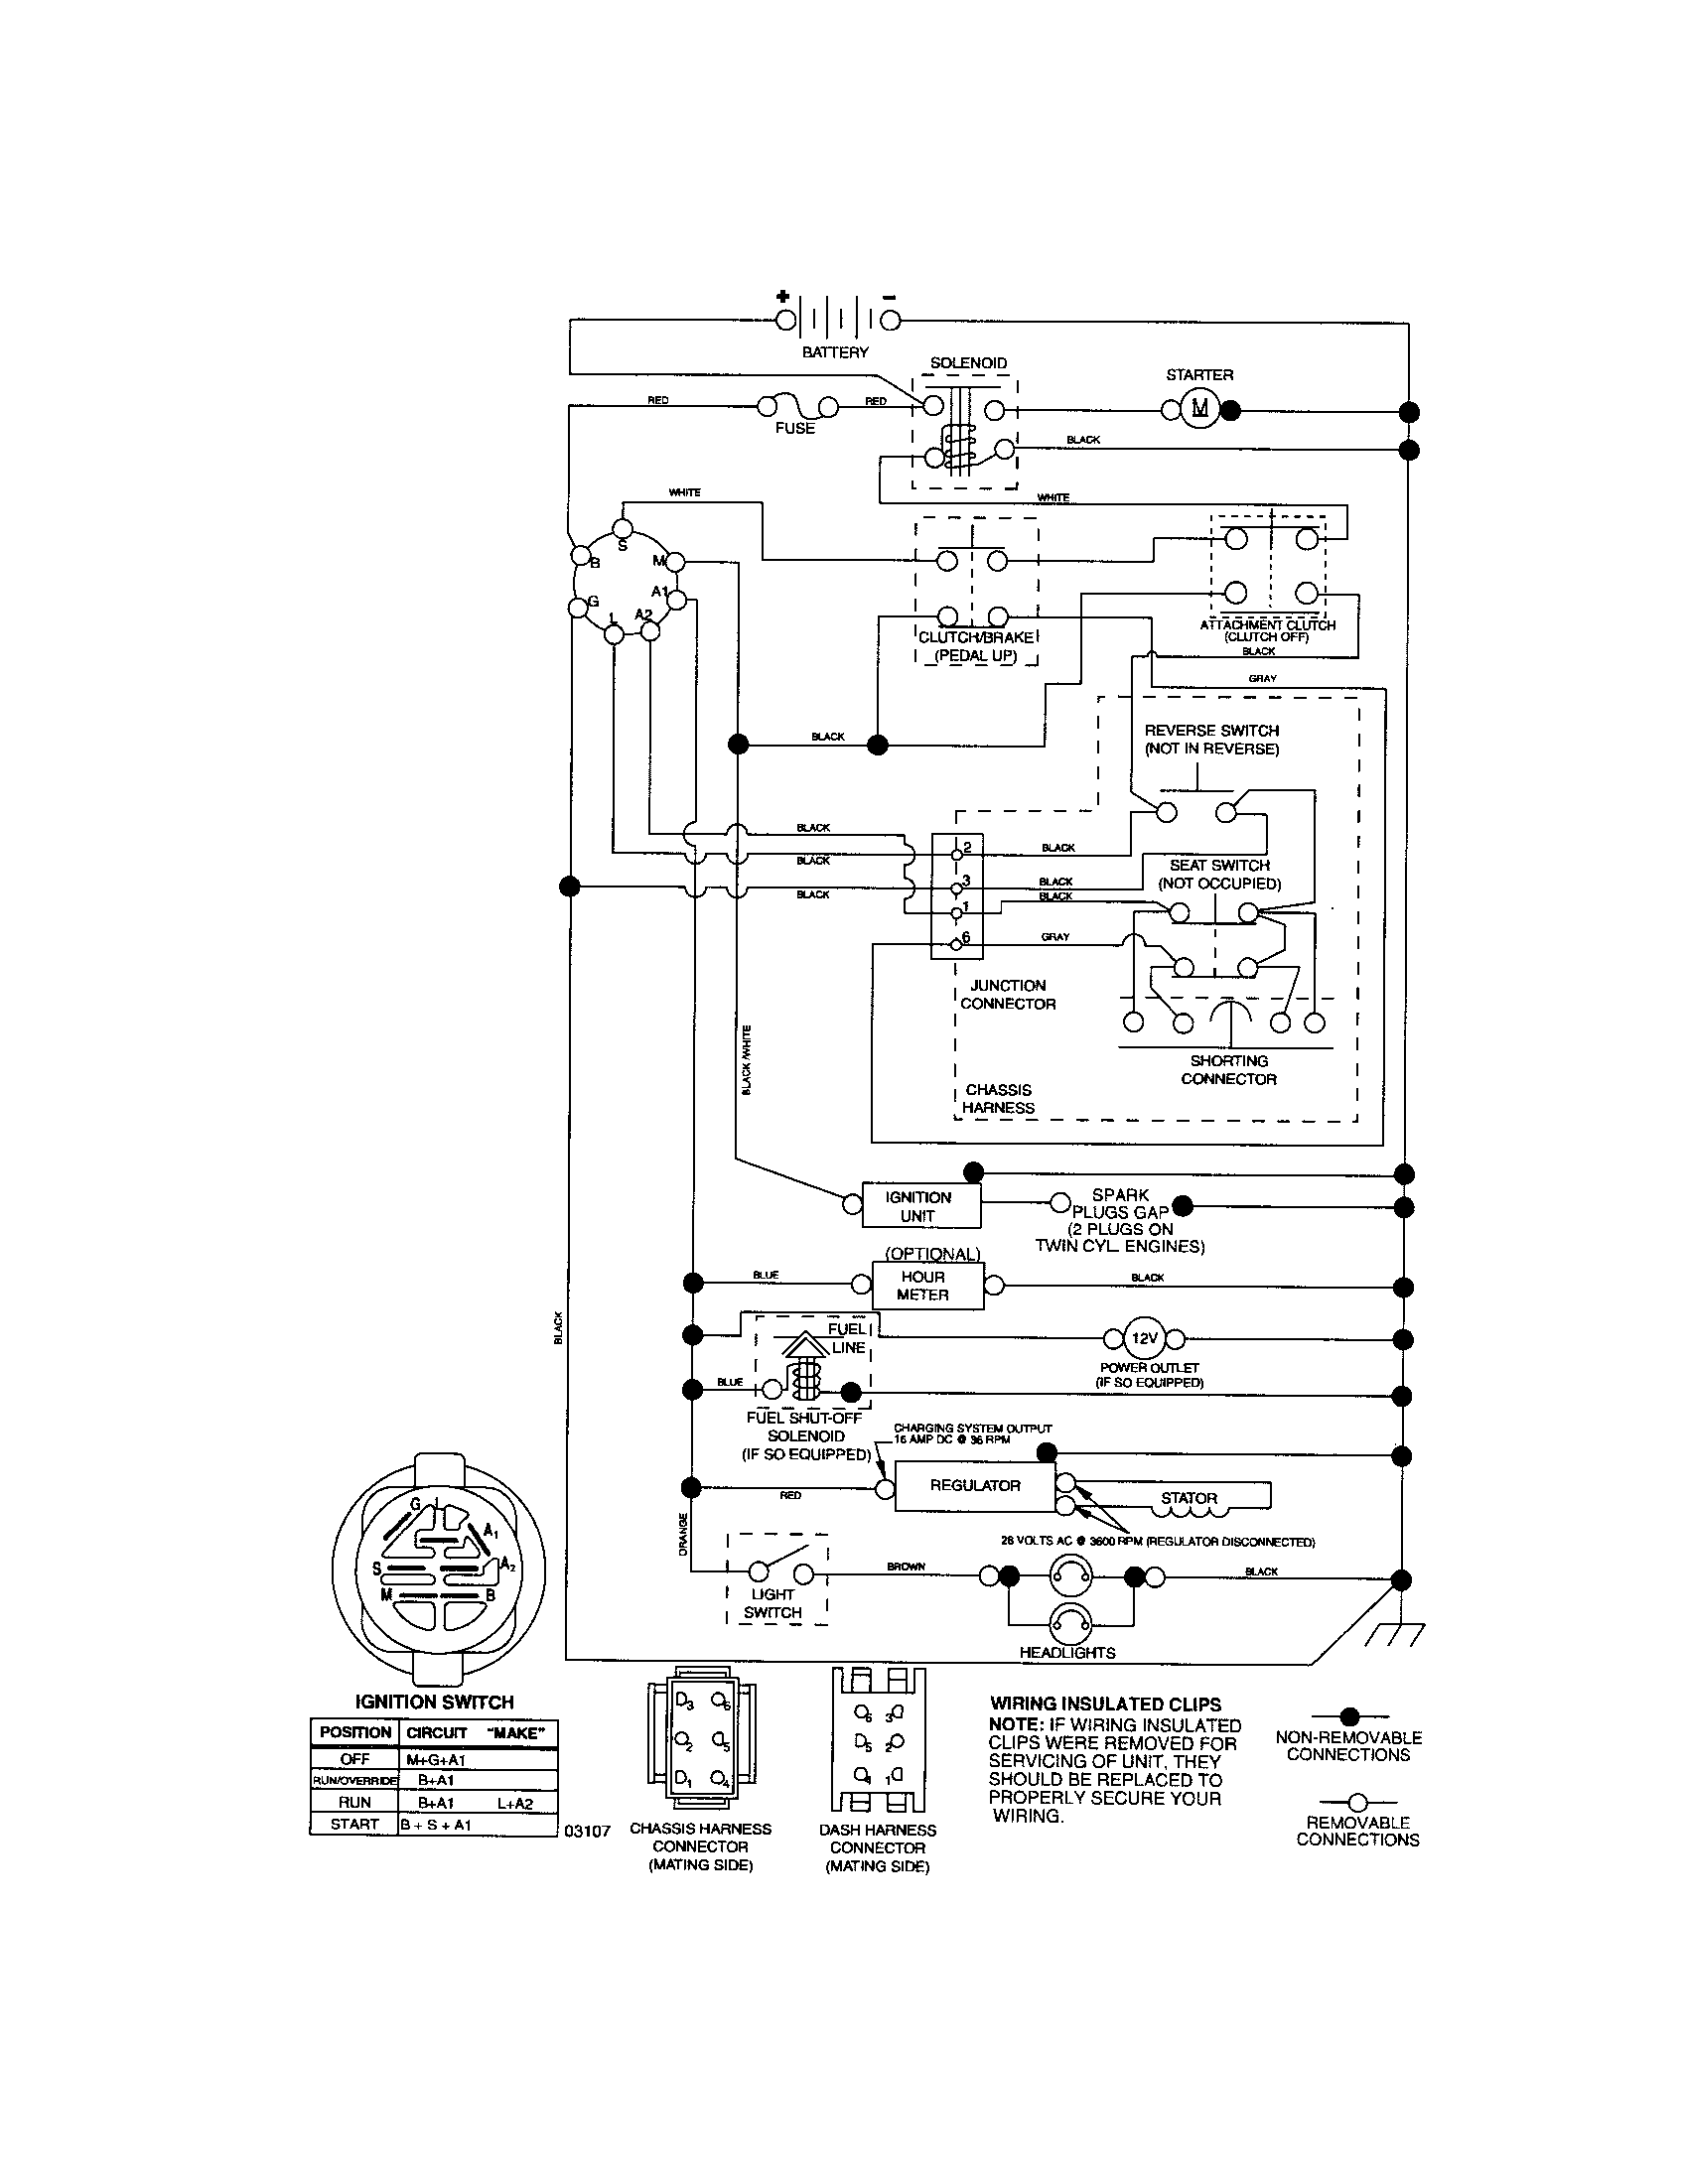 craftsman riding mower electrical diagram wiring diagram craftsman rh pinterest com grasshopper mower wiring diagram murray mower wiring diagram